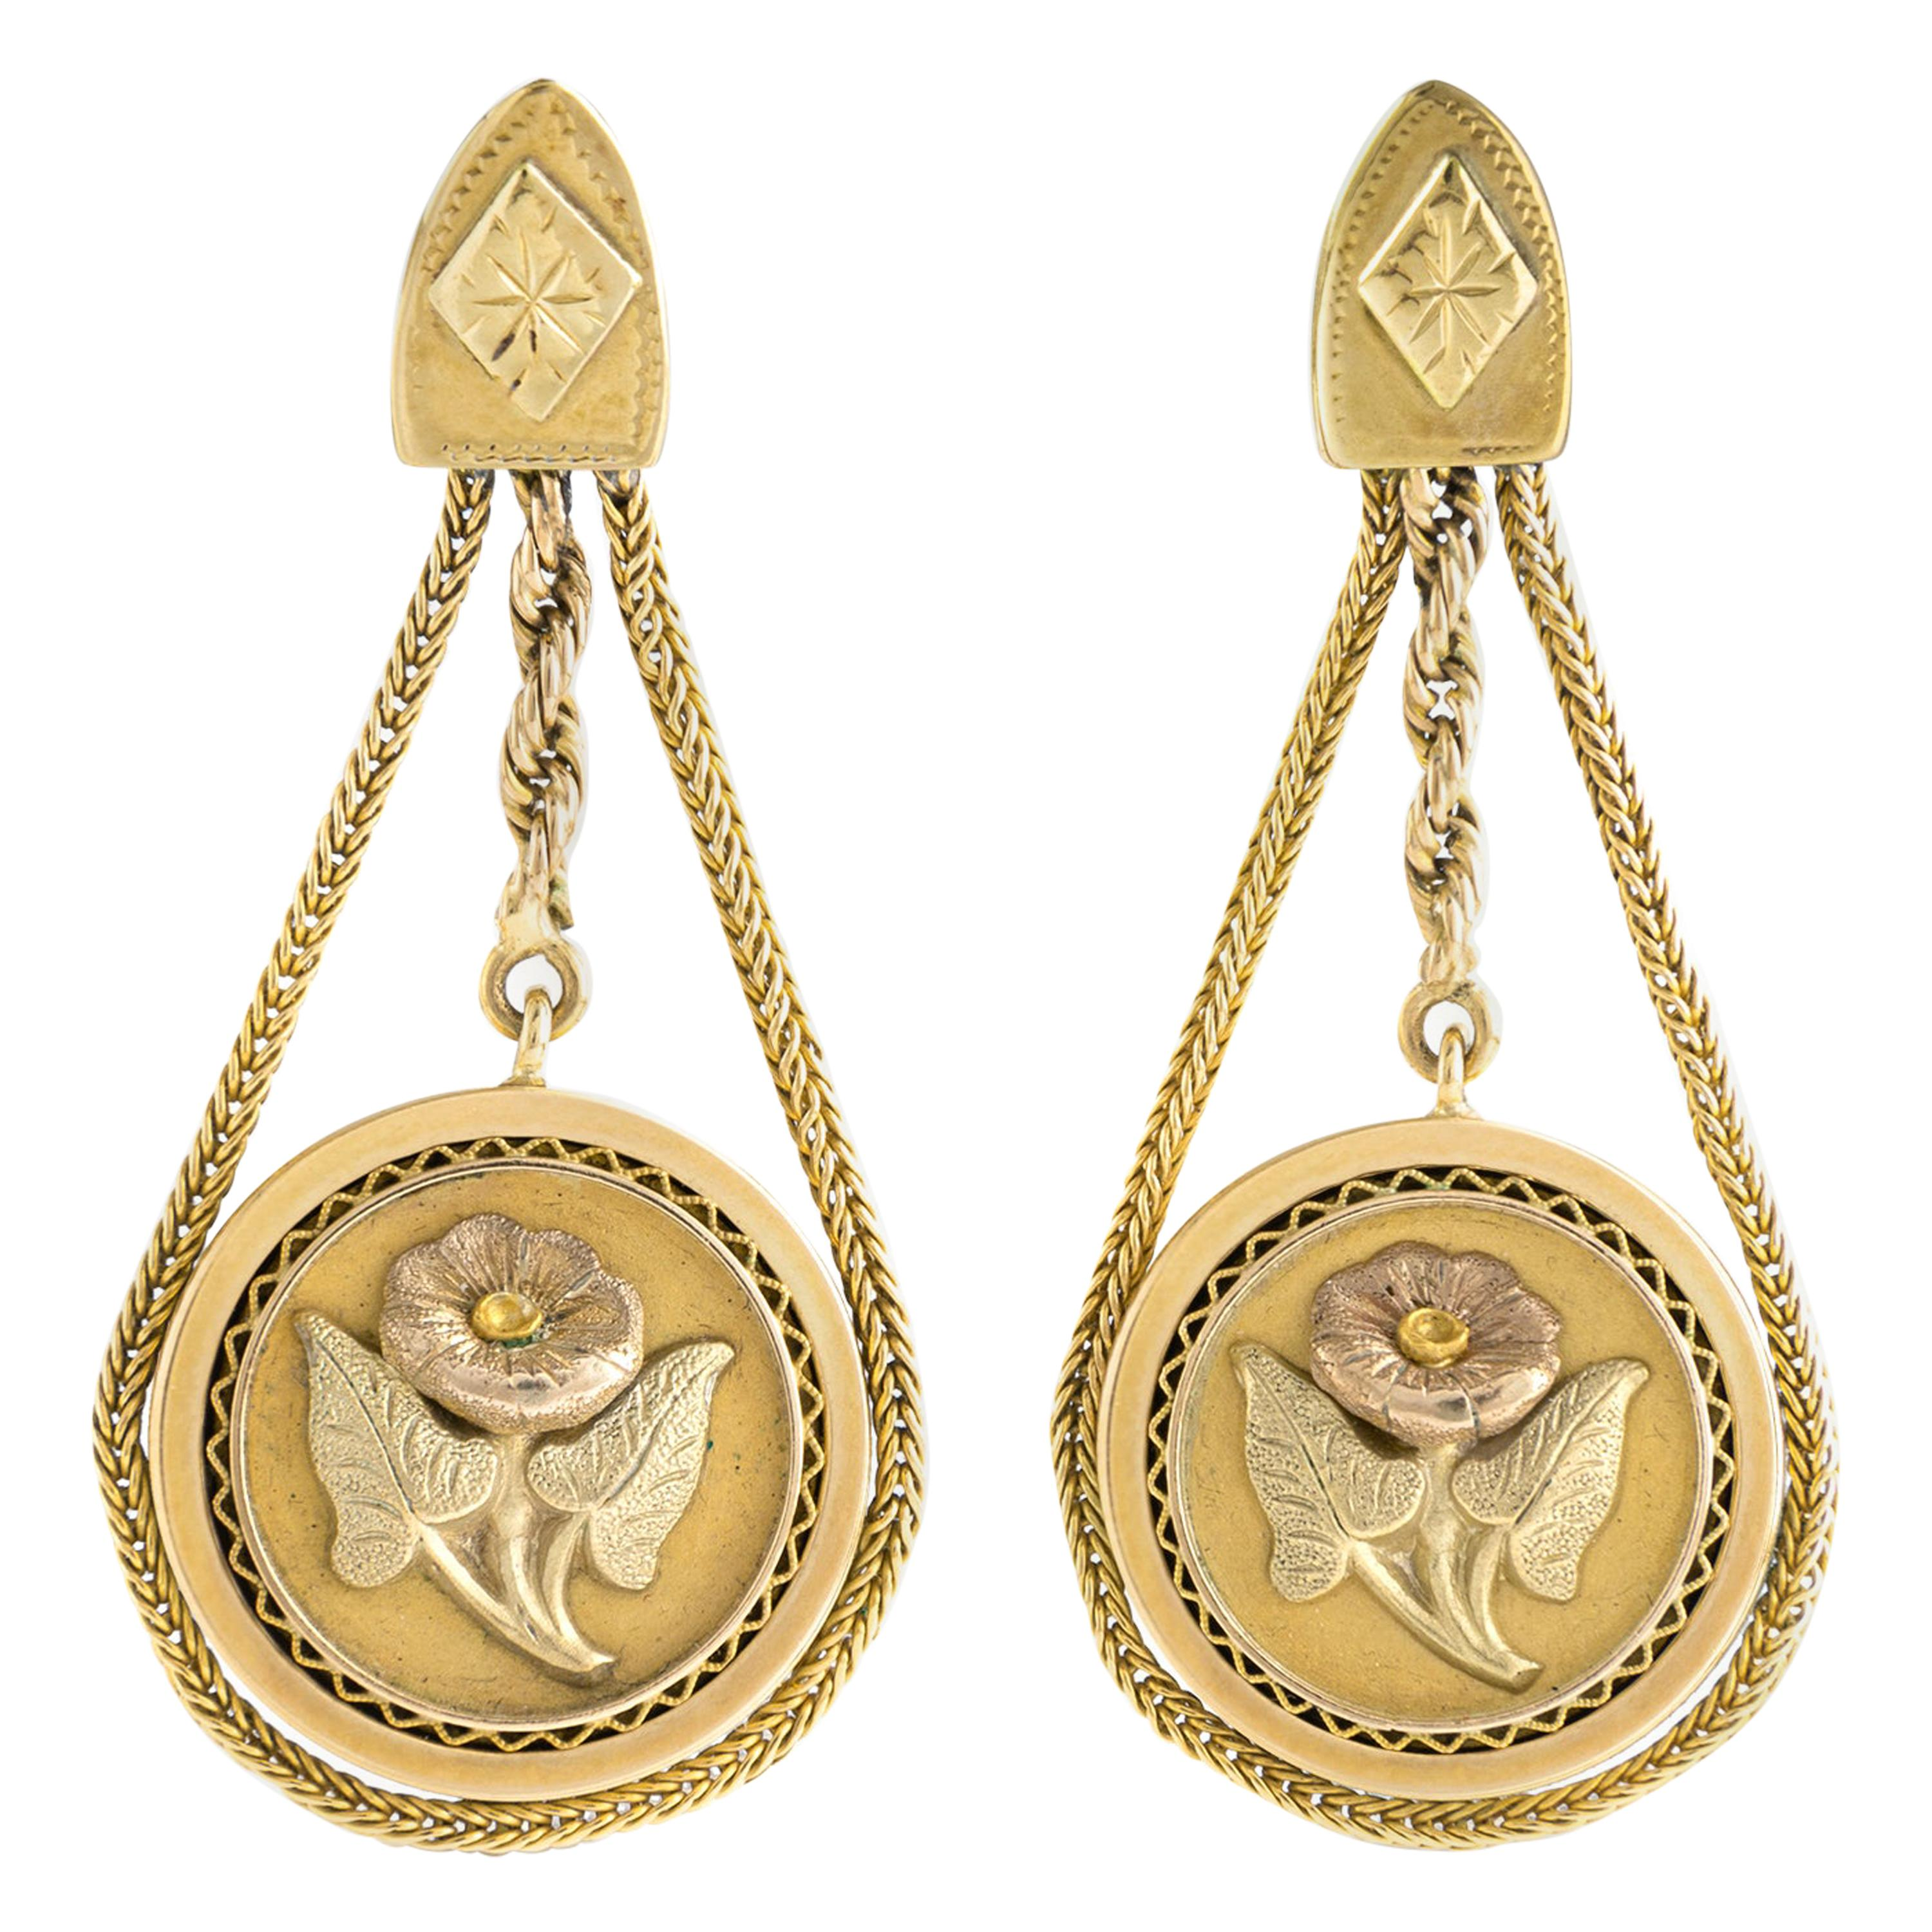 1950s Romantic Antique Revival Earrings Colored Gold